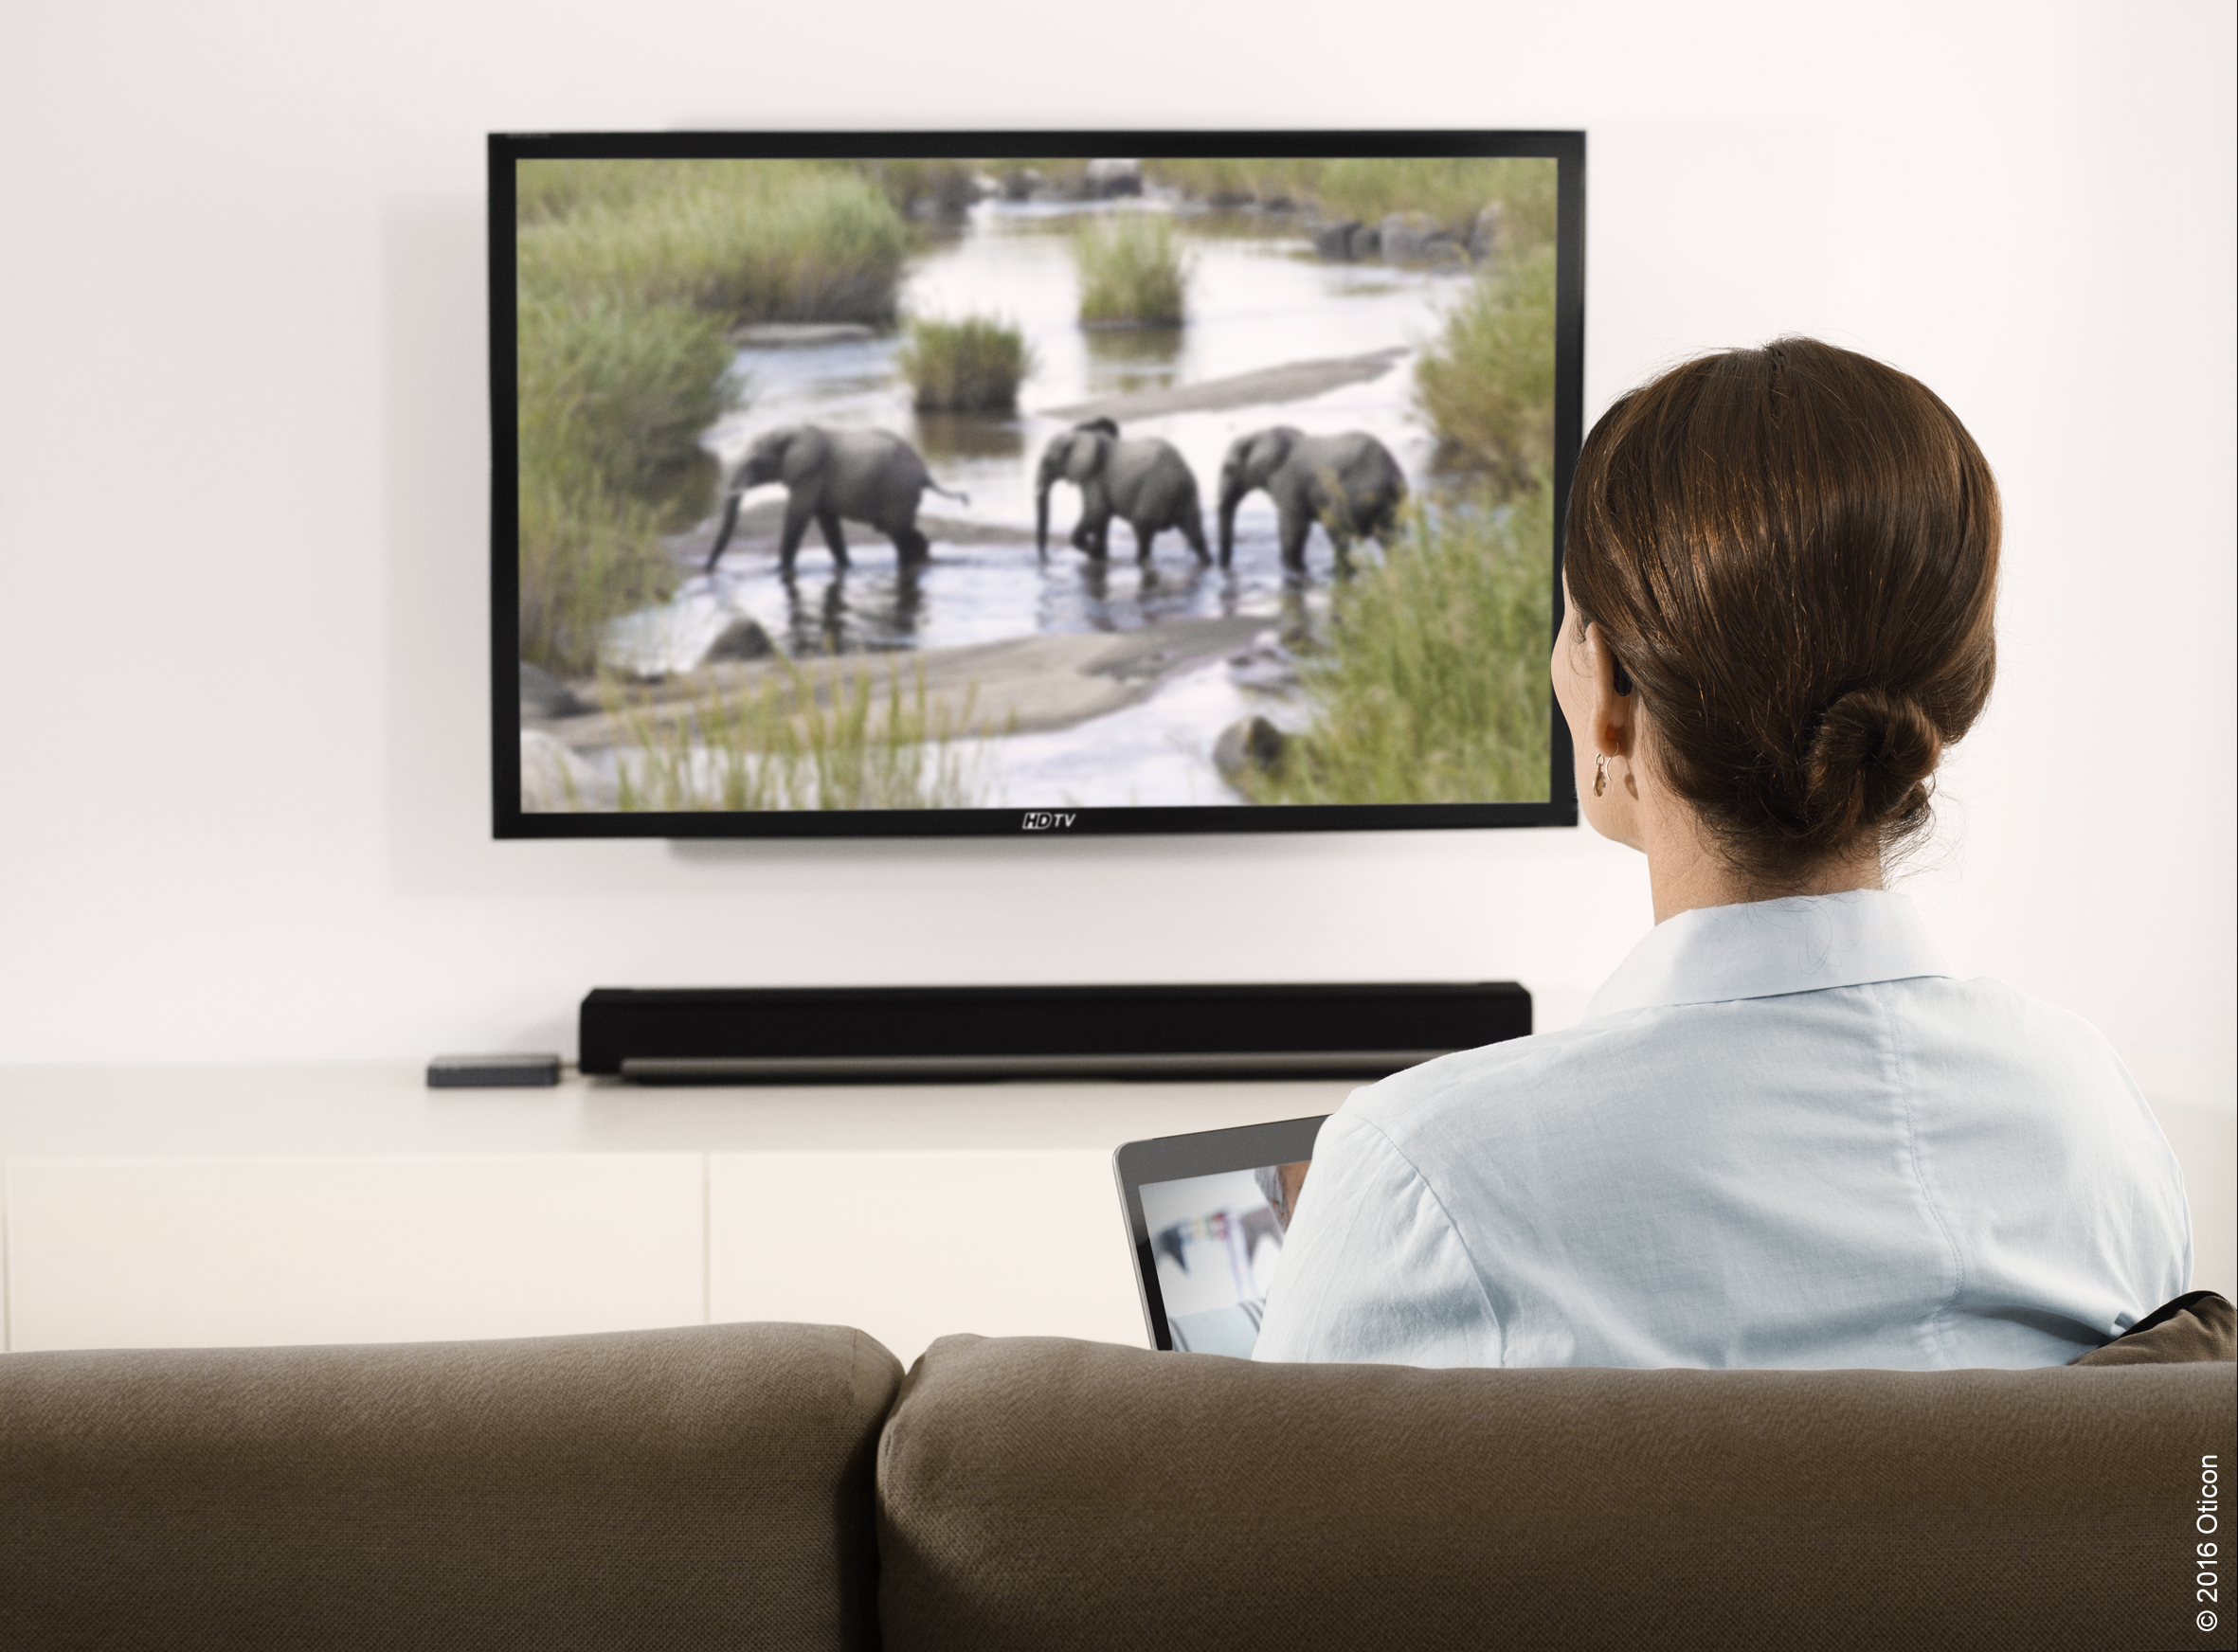 Oticon_Connectivity_TV_Woman_Width200mm_300dpi_(C)_2016_Oticon